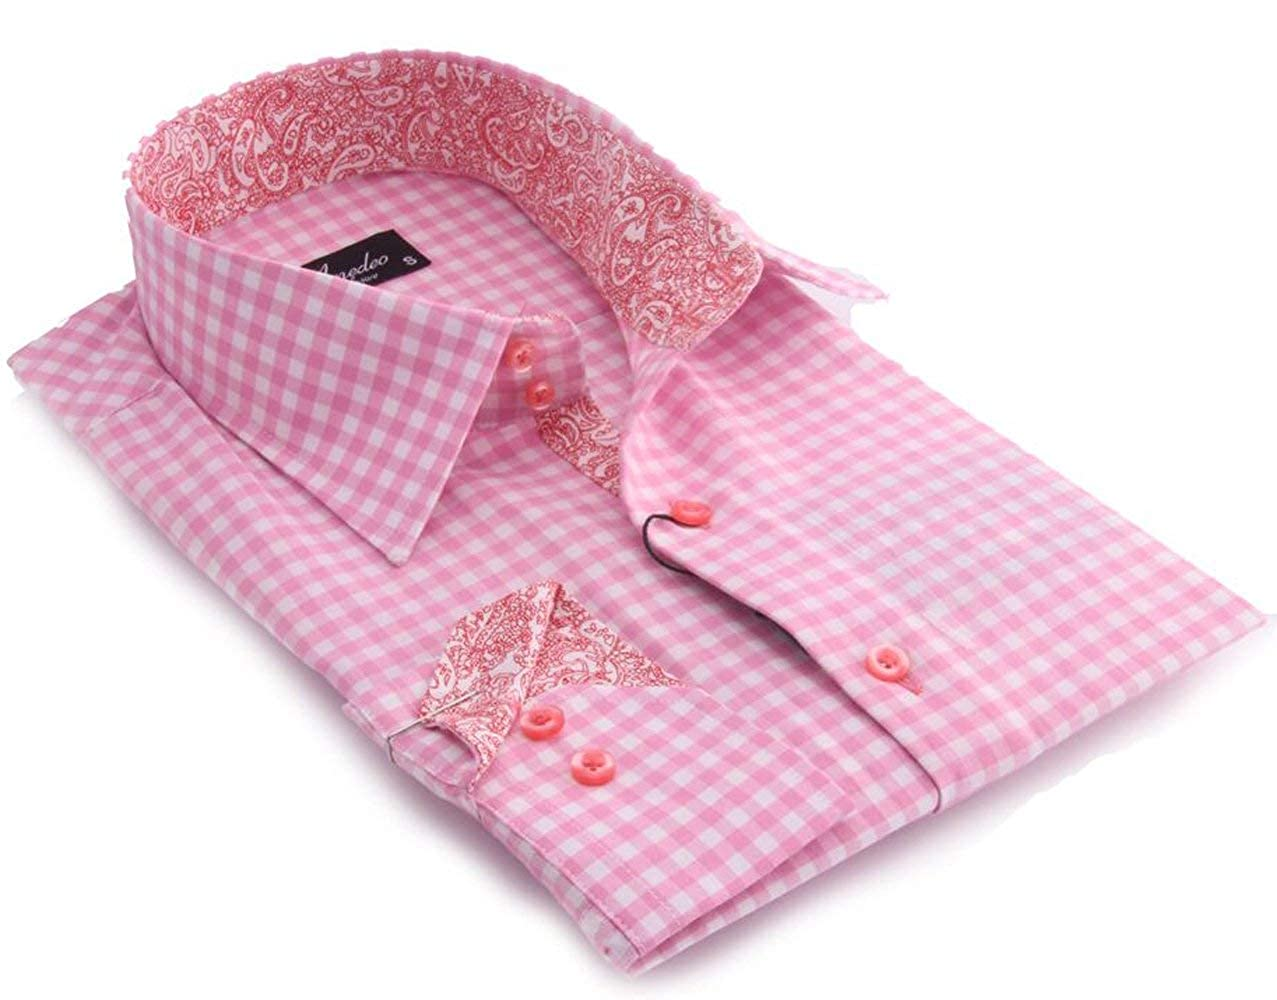 Amedeo Best shirt Mens classic fit Stylish Button Down Turkey Shirt Cotton Cuffs